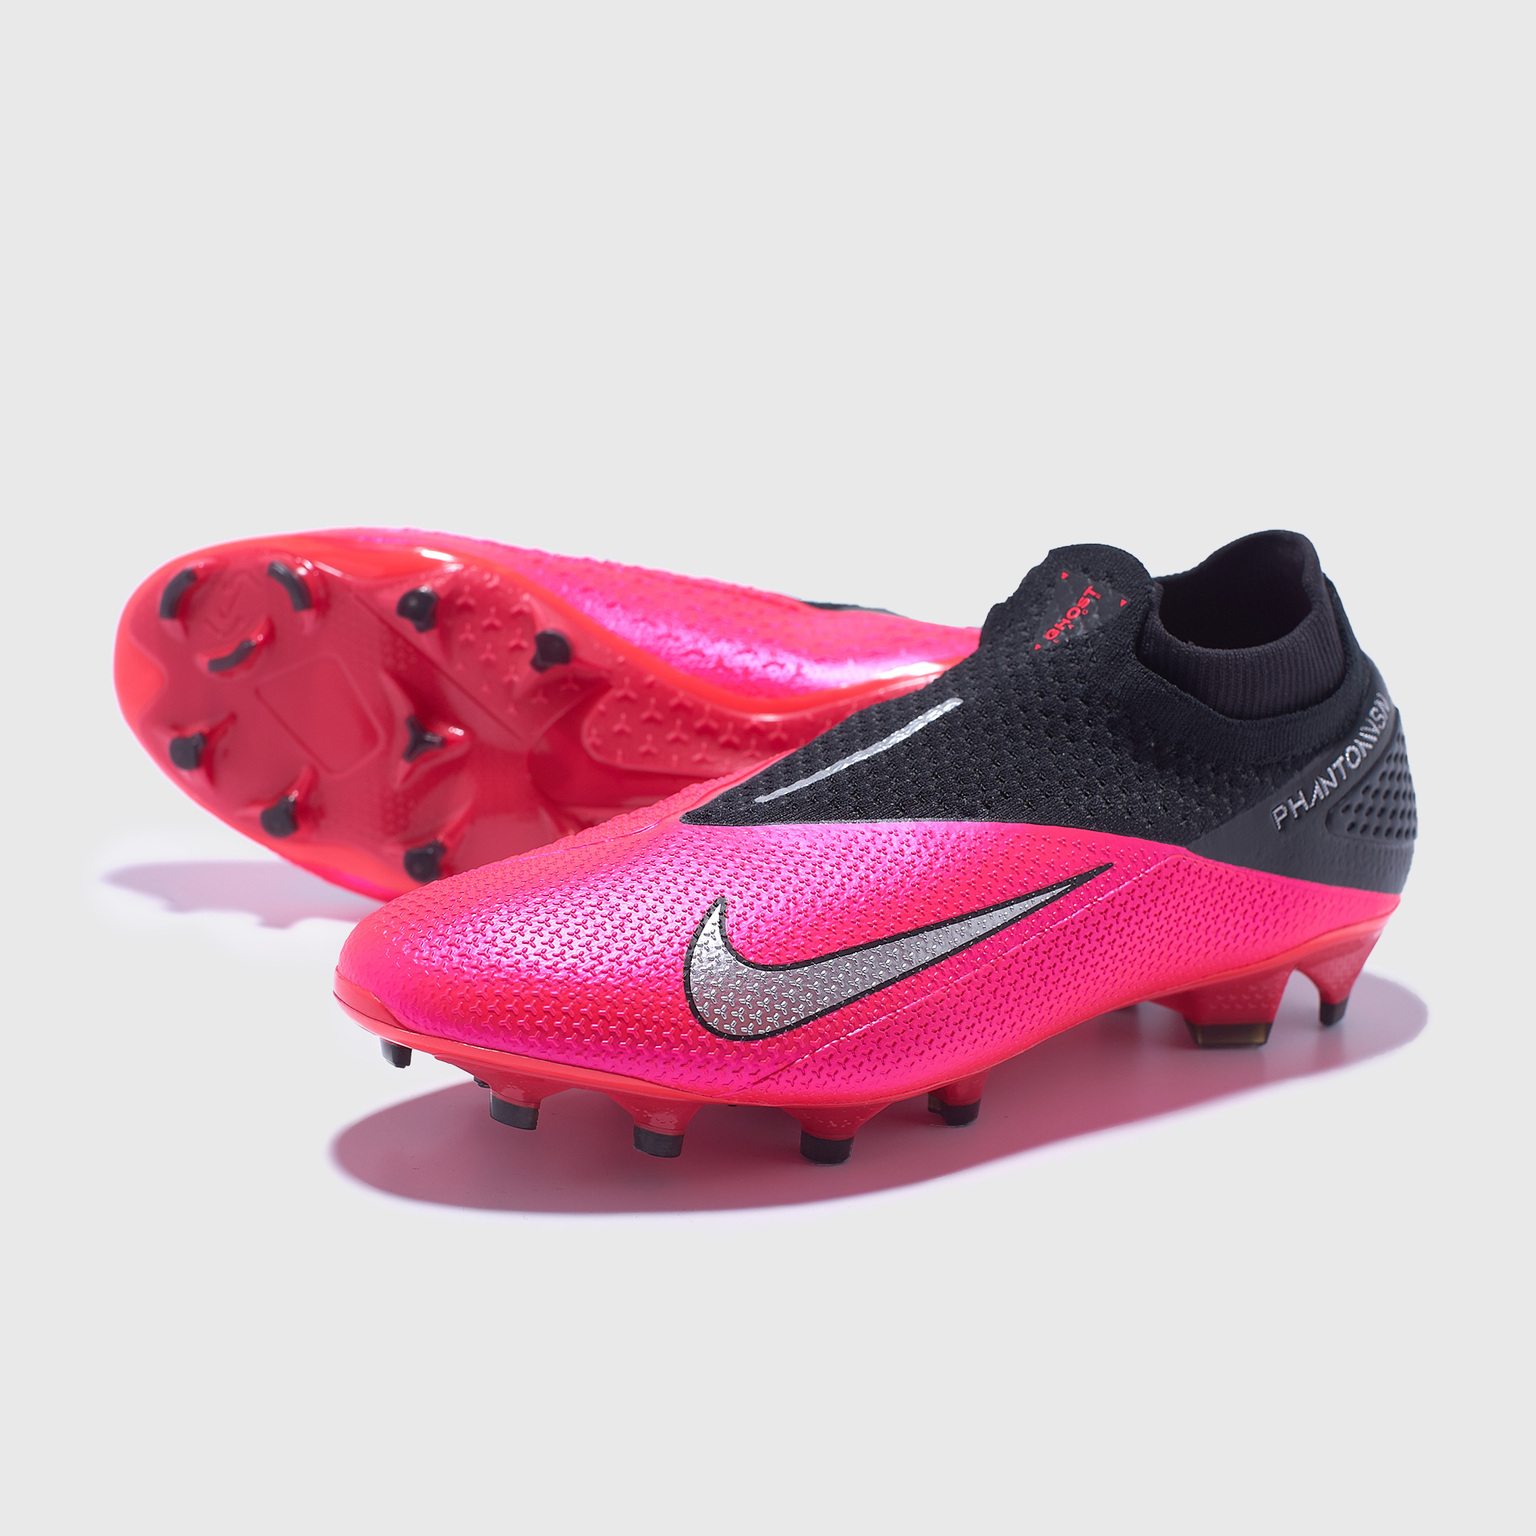 Бутсы Nike Phantom Vision 2 Elite DF FG CD4161-606 бутсы nike phantom vision 2 pro df fg cd4162 606